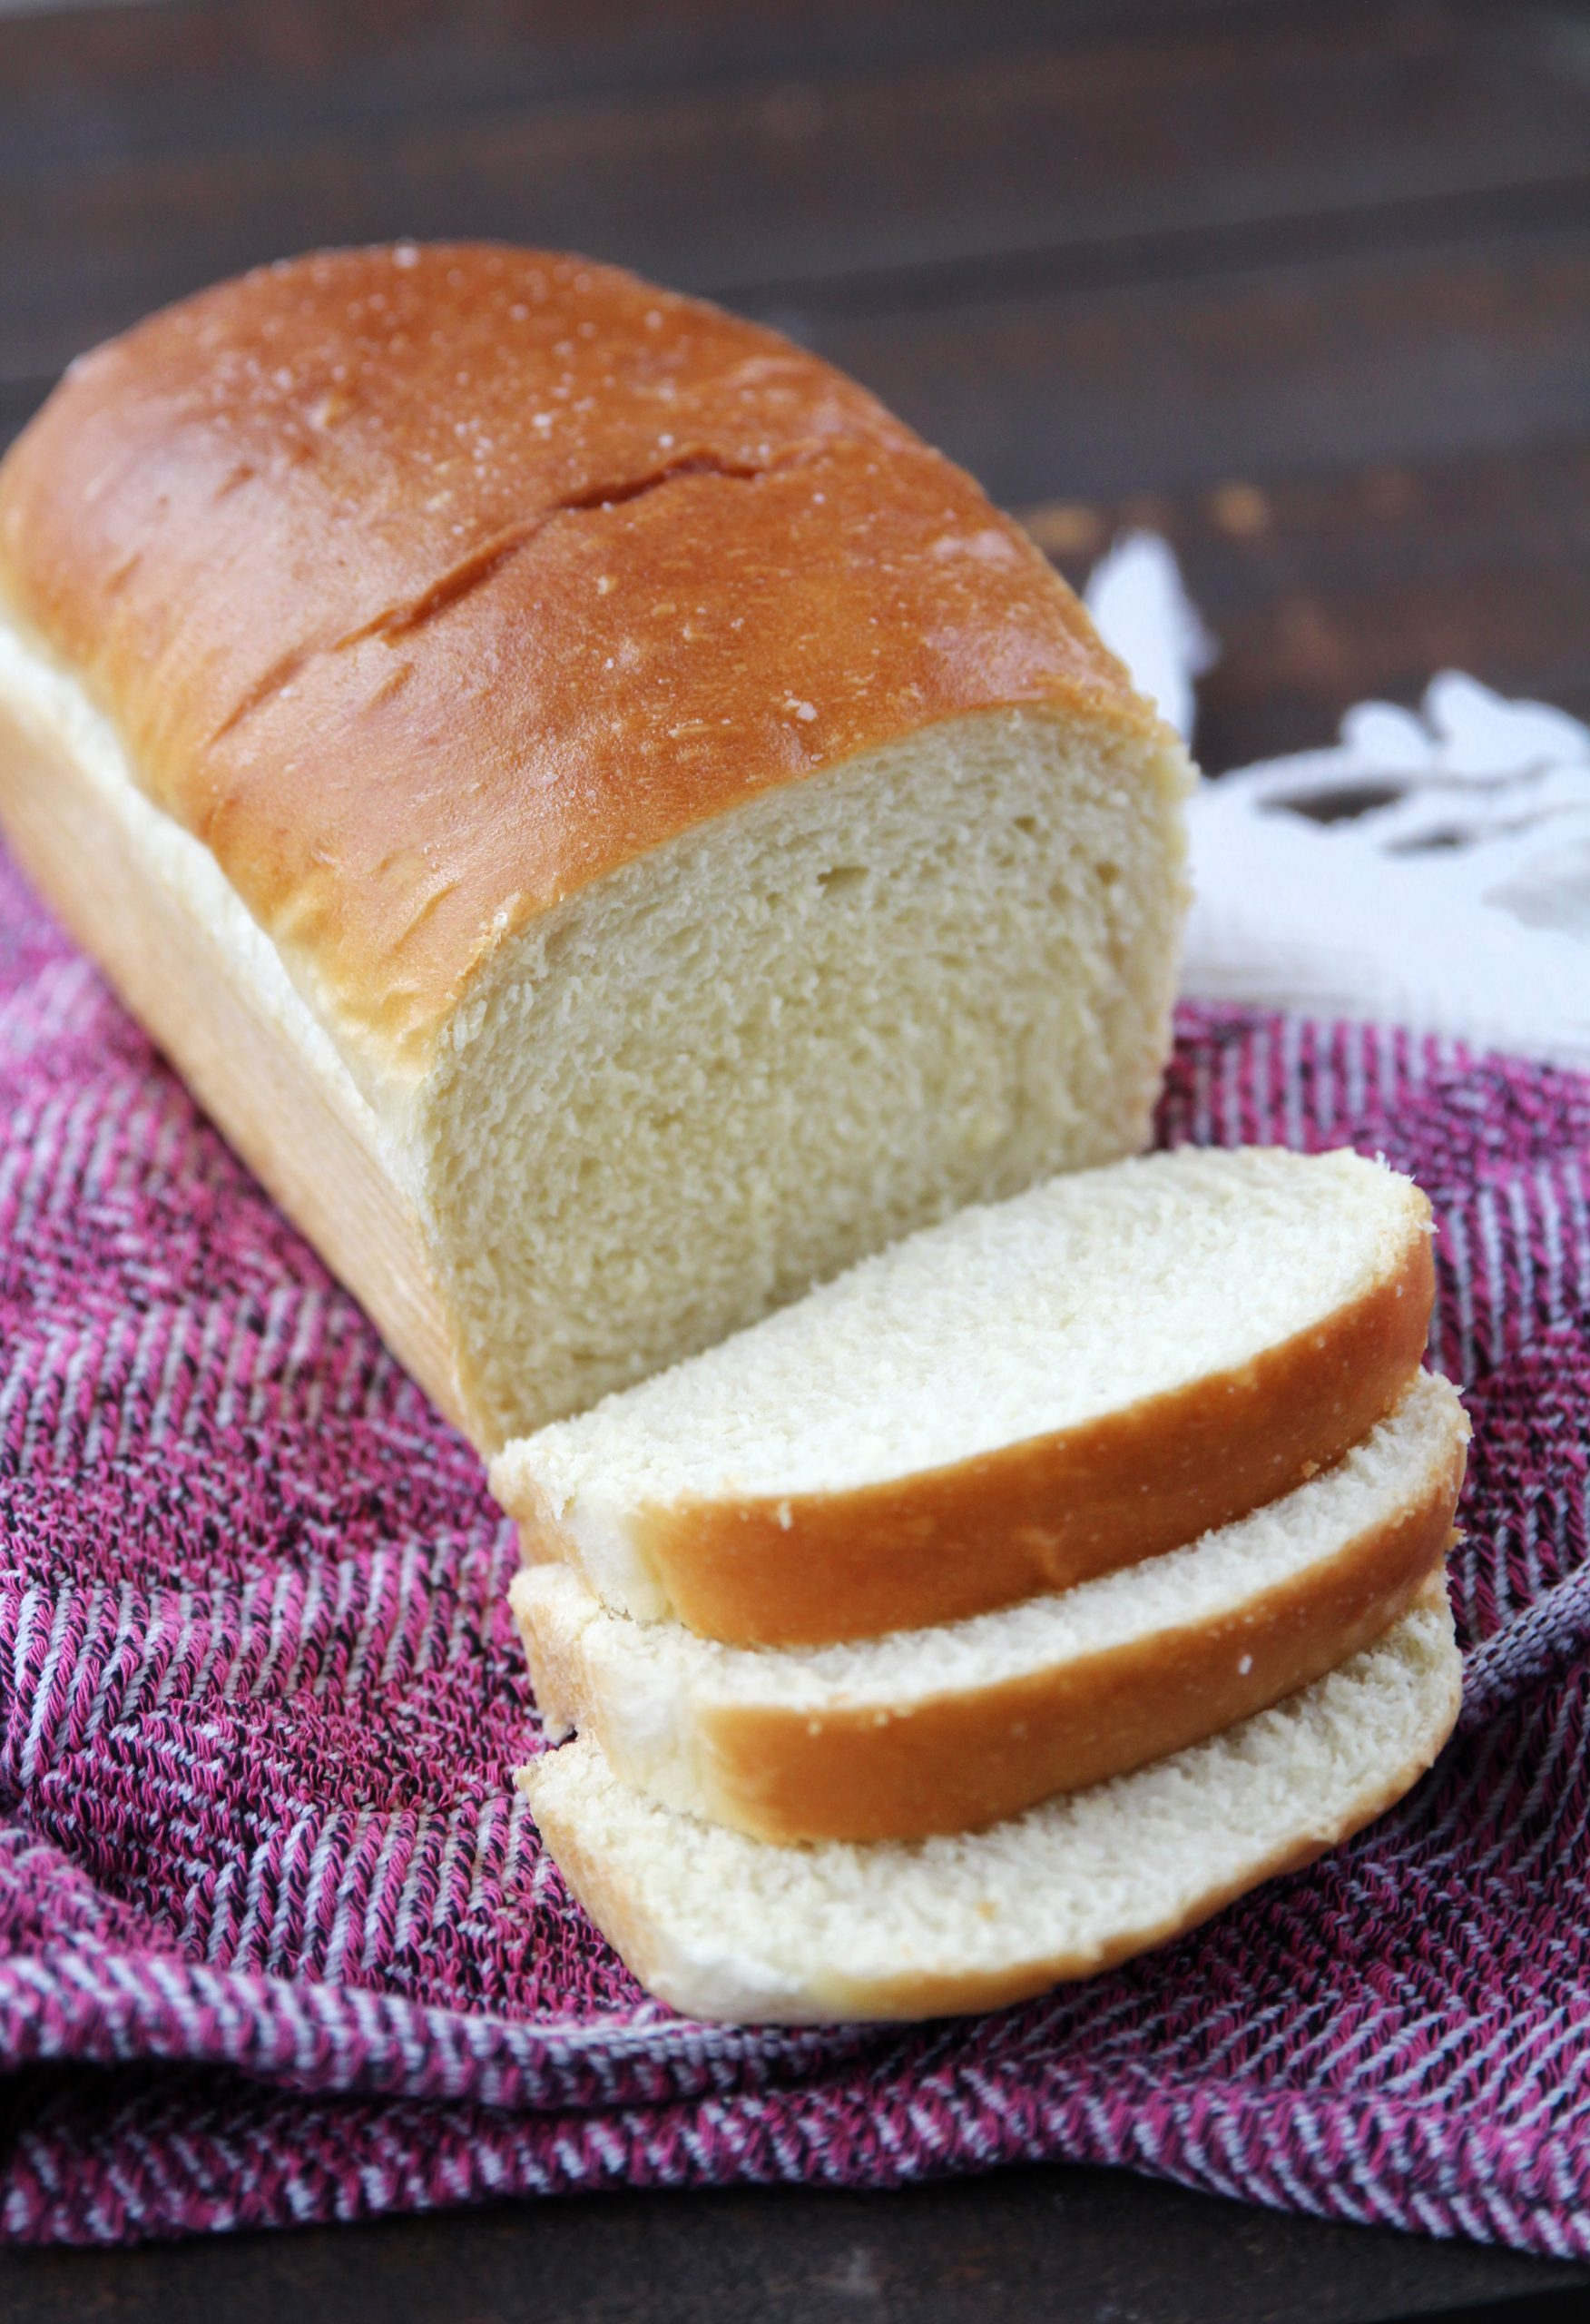 Loaf of white bread with a few slices cut